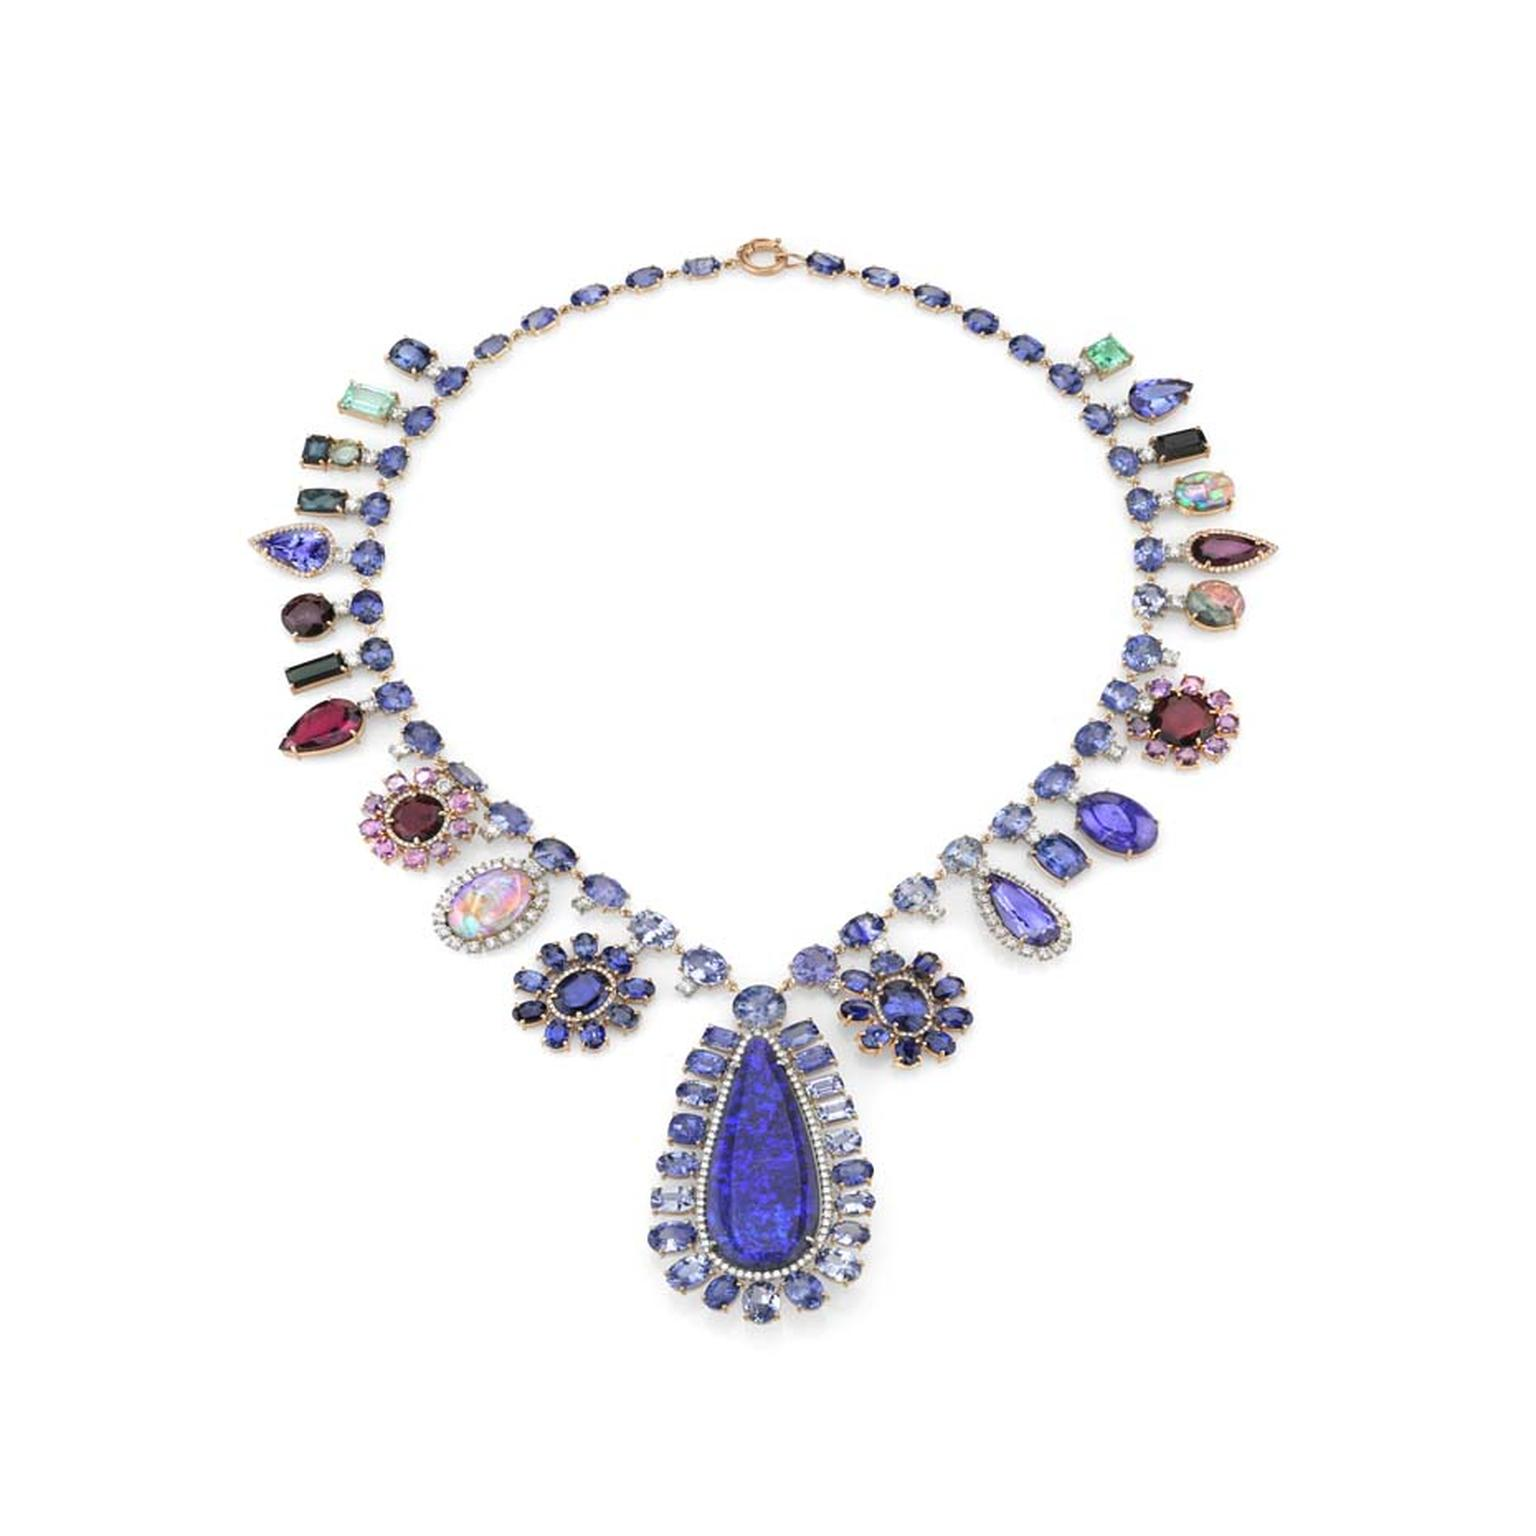 Irene Neuwirth one-of-a-kind rose gold necklace set with Ceylon sapphires, purple sapphires, tanzanites, emeralds, tourmalines, Lightning Ridge opals, diamonds and diamond pavé.